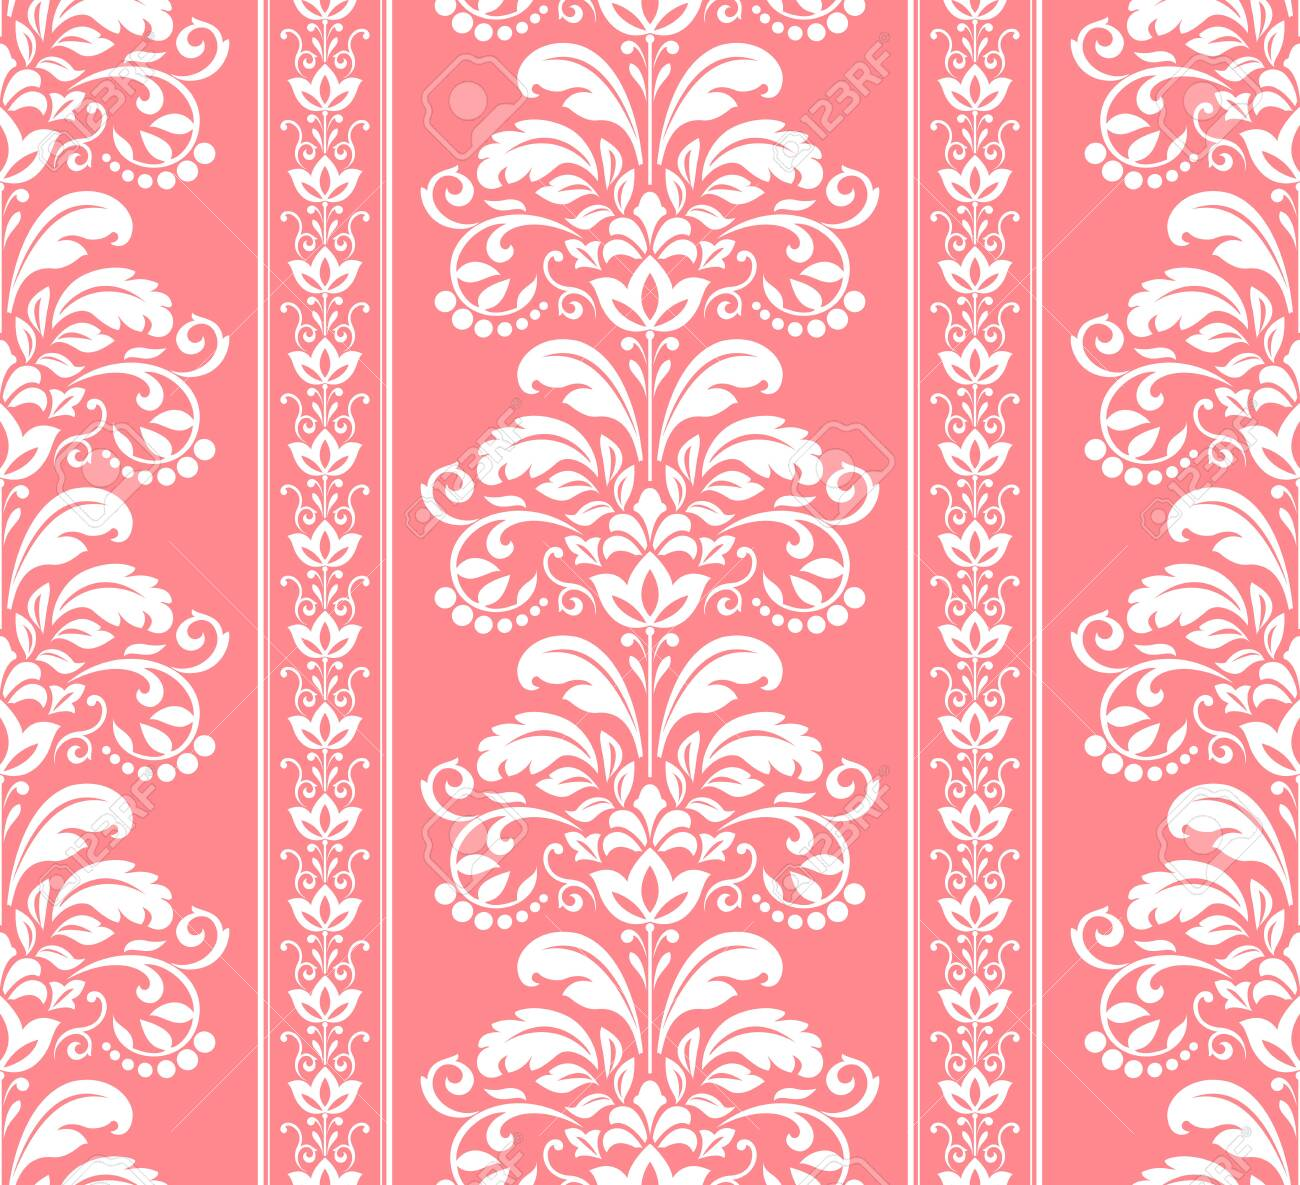 Floral Pattern Vintage Wallpaper In The Baroque Style Seamless Background White And Pink Ornament For Fabric Wallpaper Packaging Ornate Damask